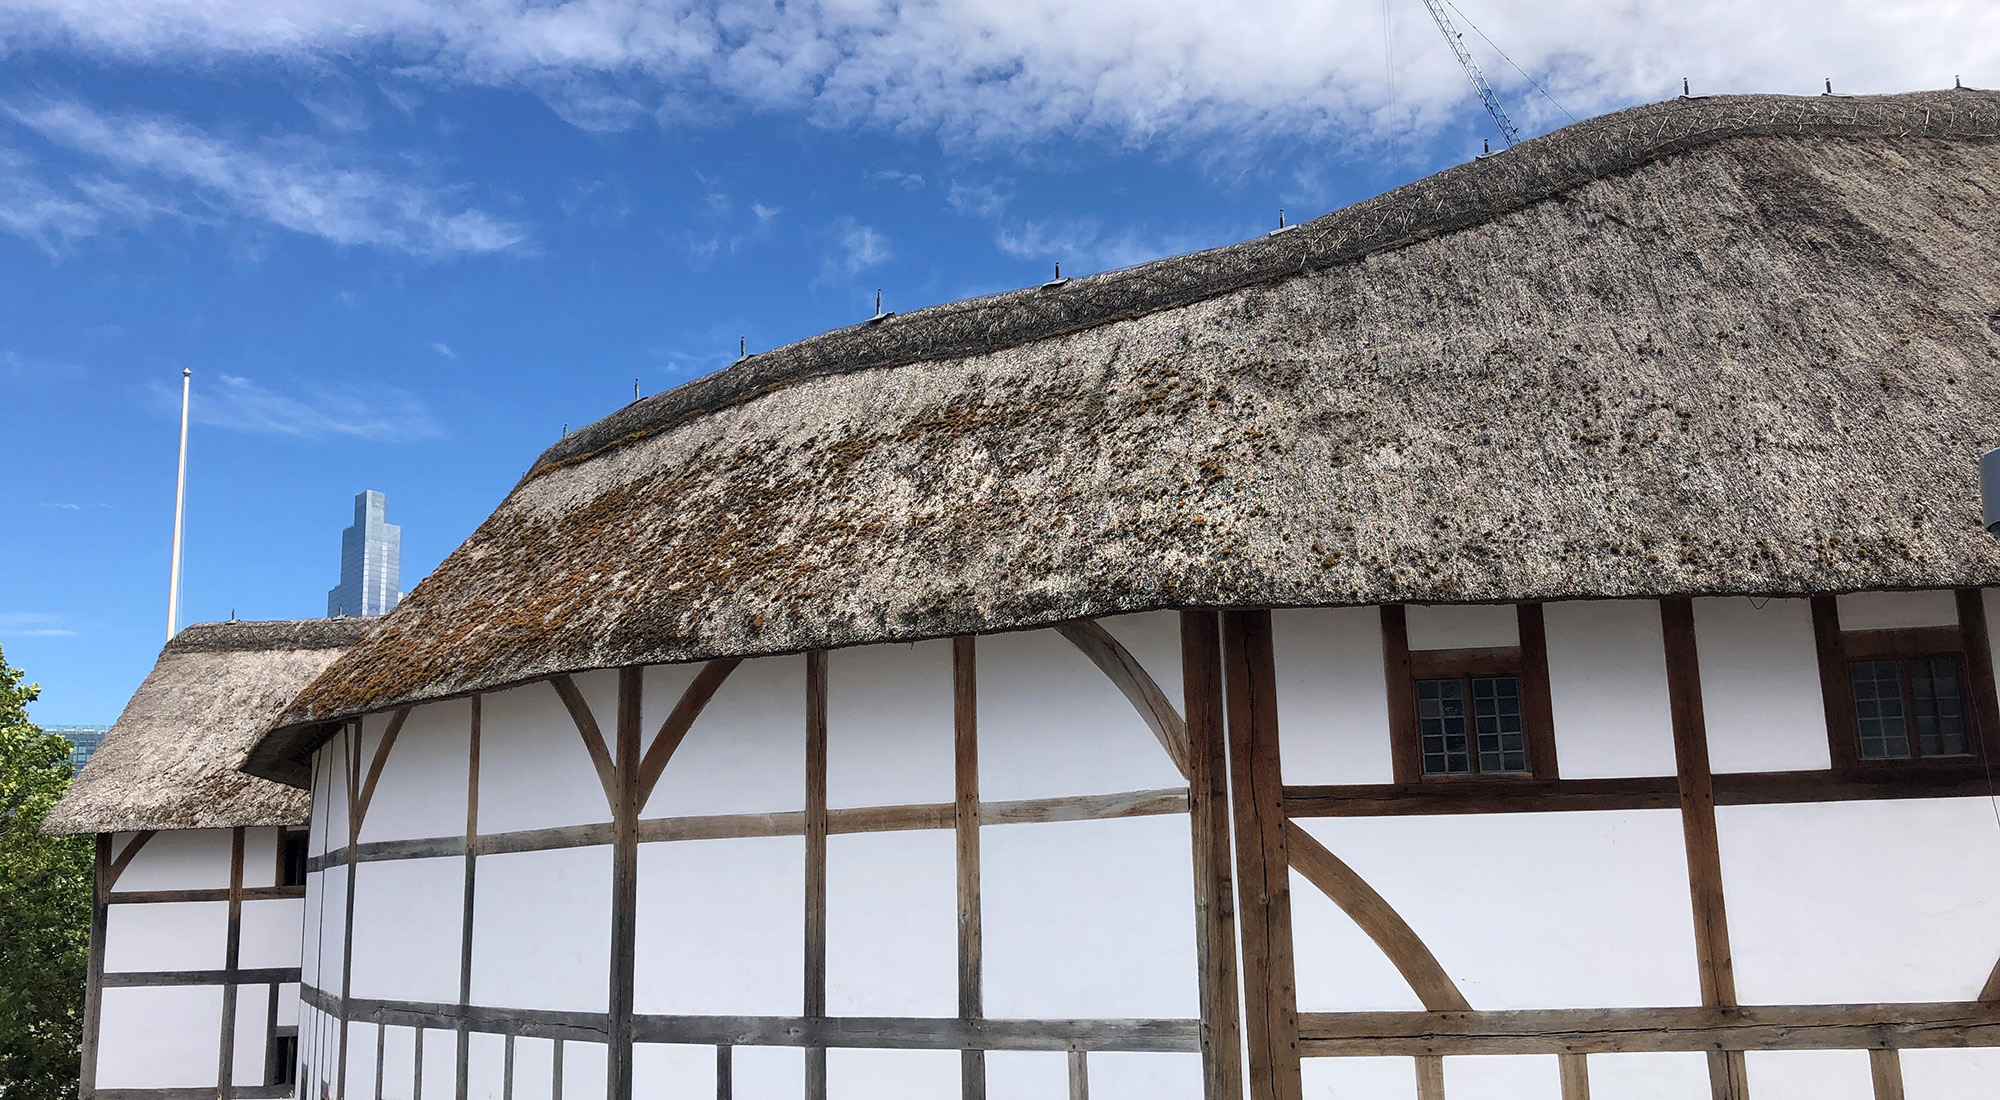 A side view looking at a white wattle and daub theatre, with a blue sky above.